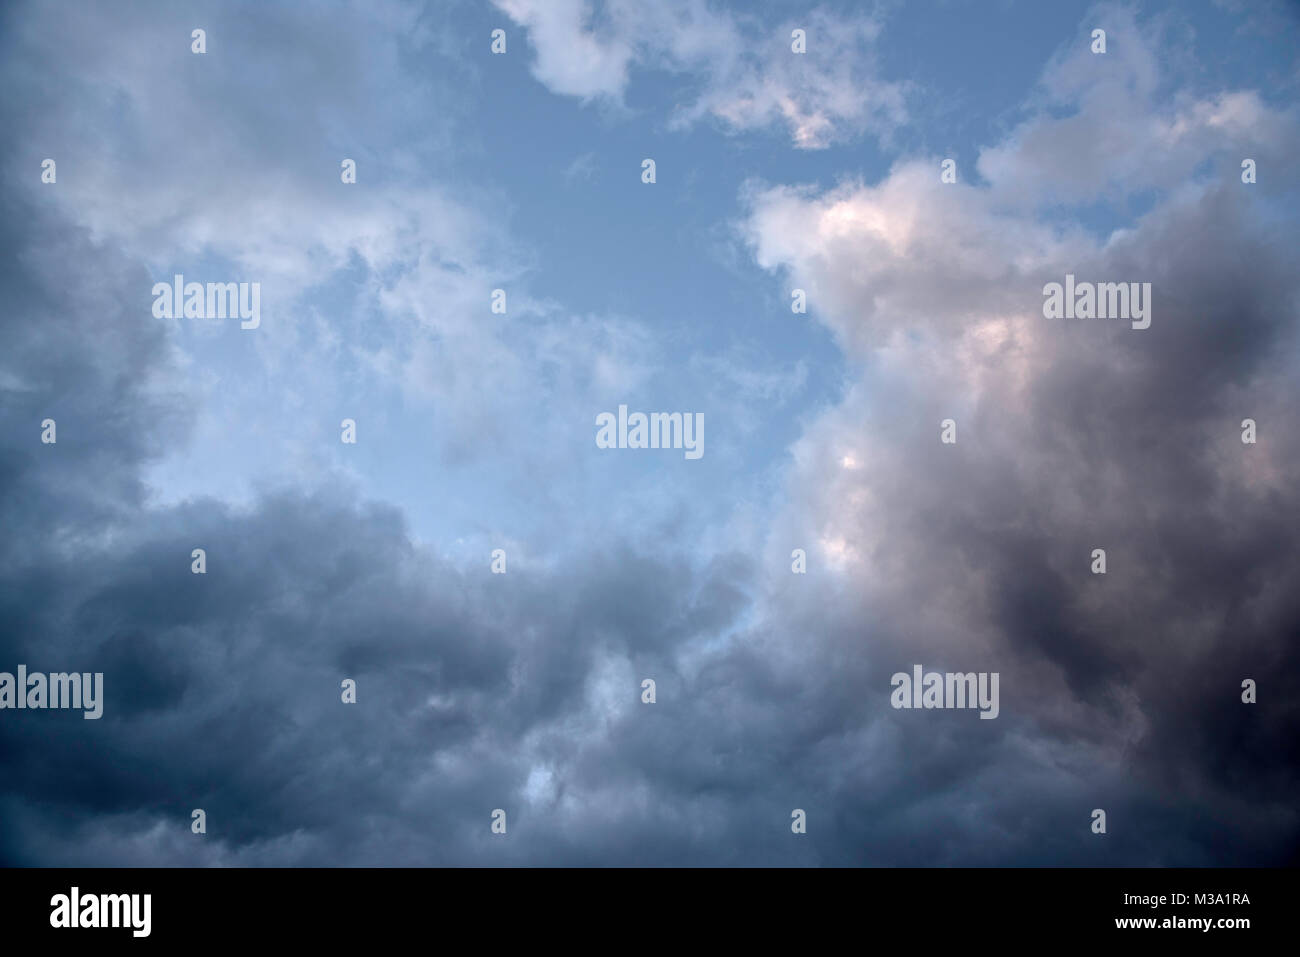 Clearing spring storm - Stock Image